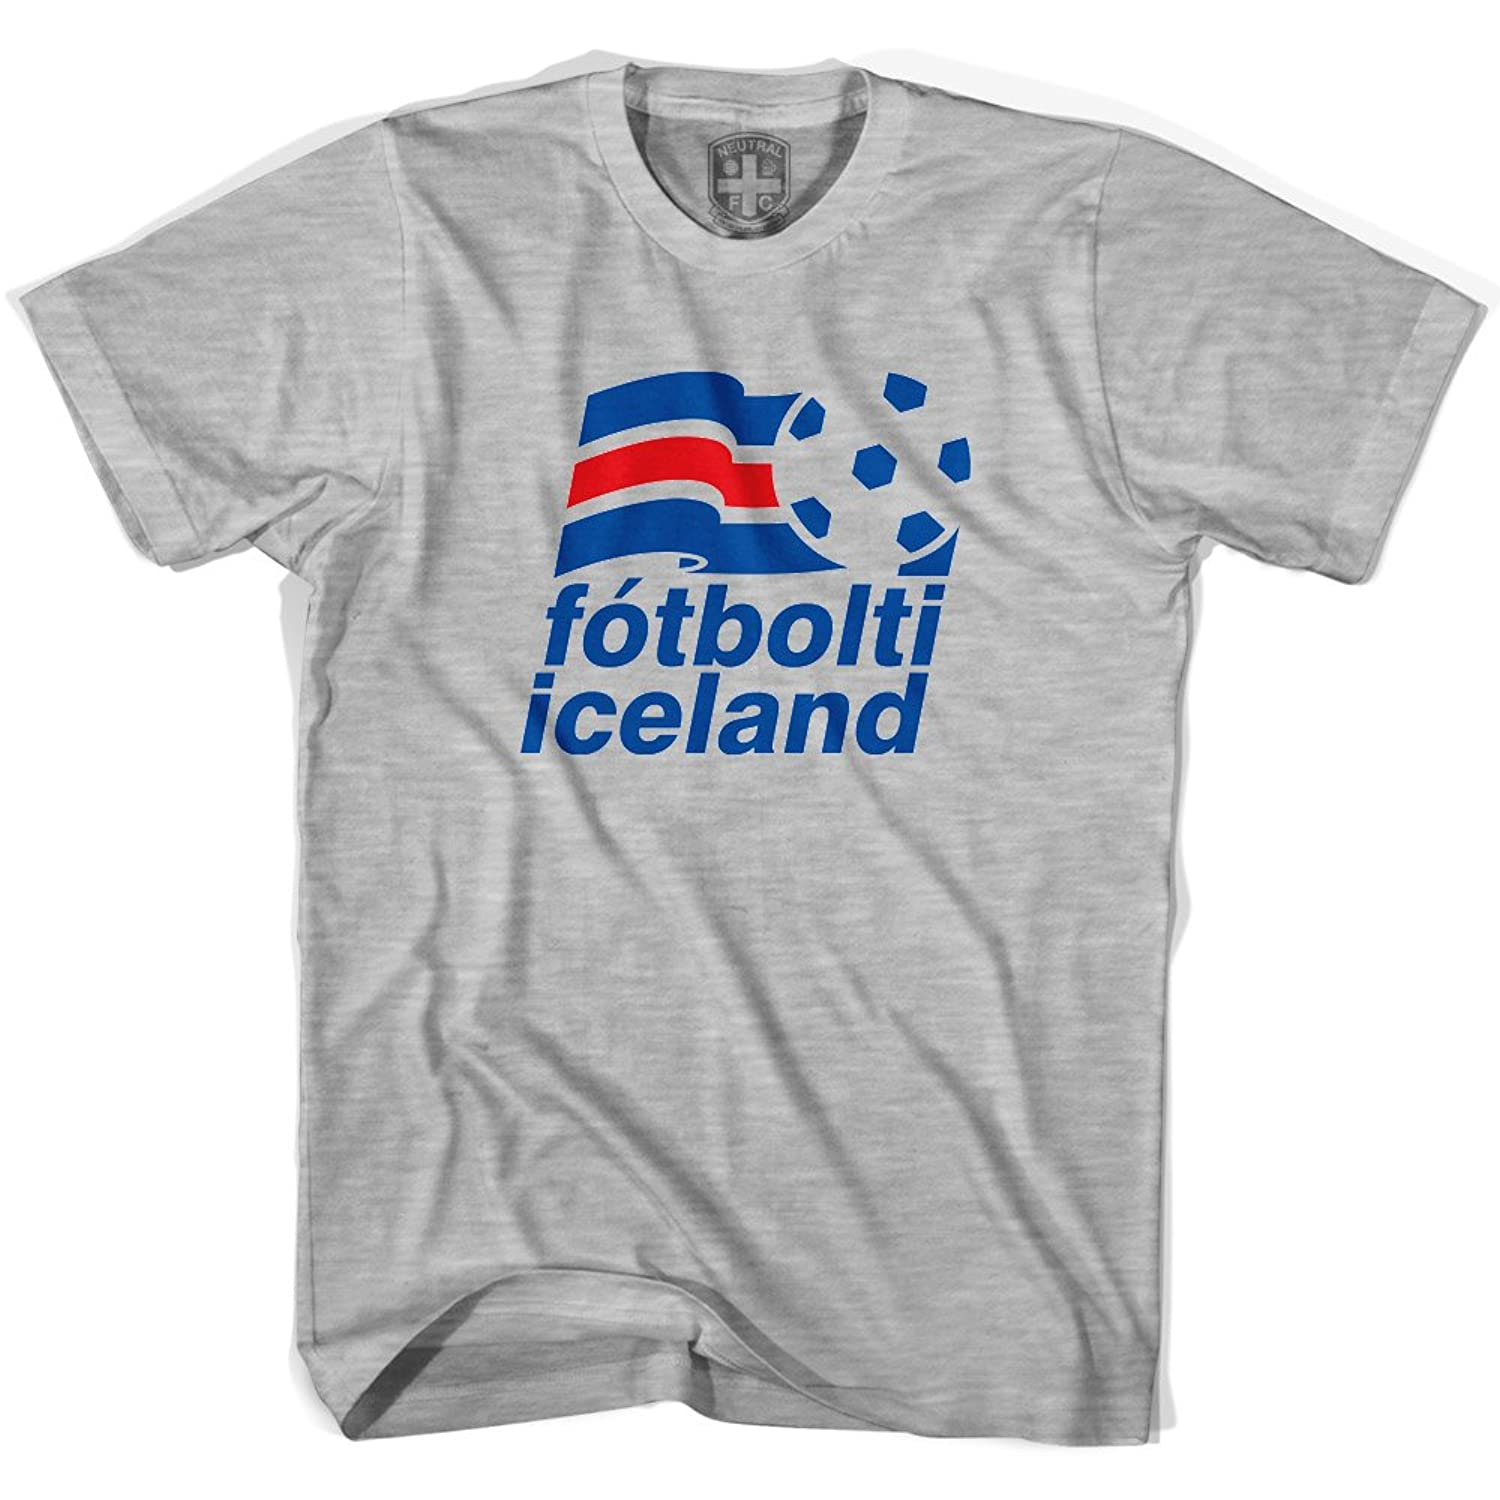 Amazon.com: Iceland Soccer T-shirt: Clothing